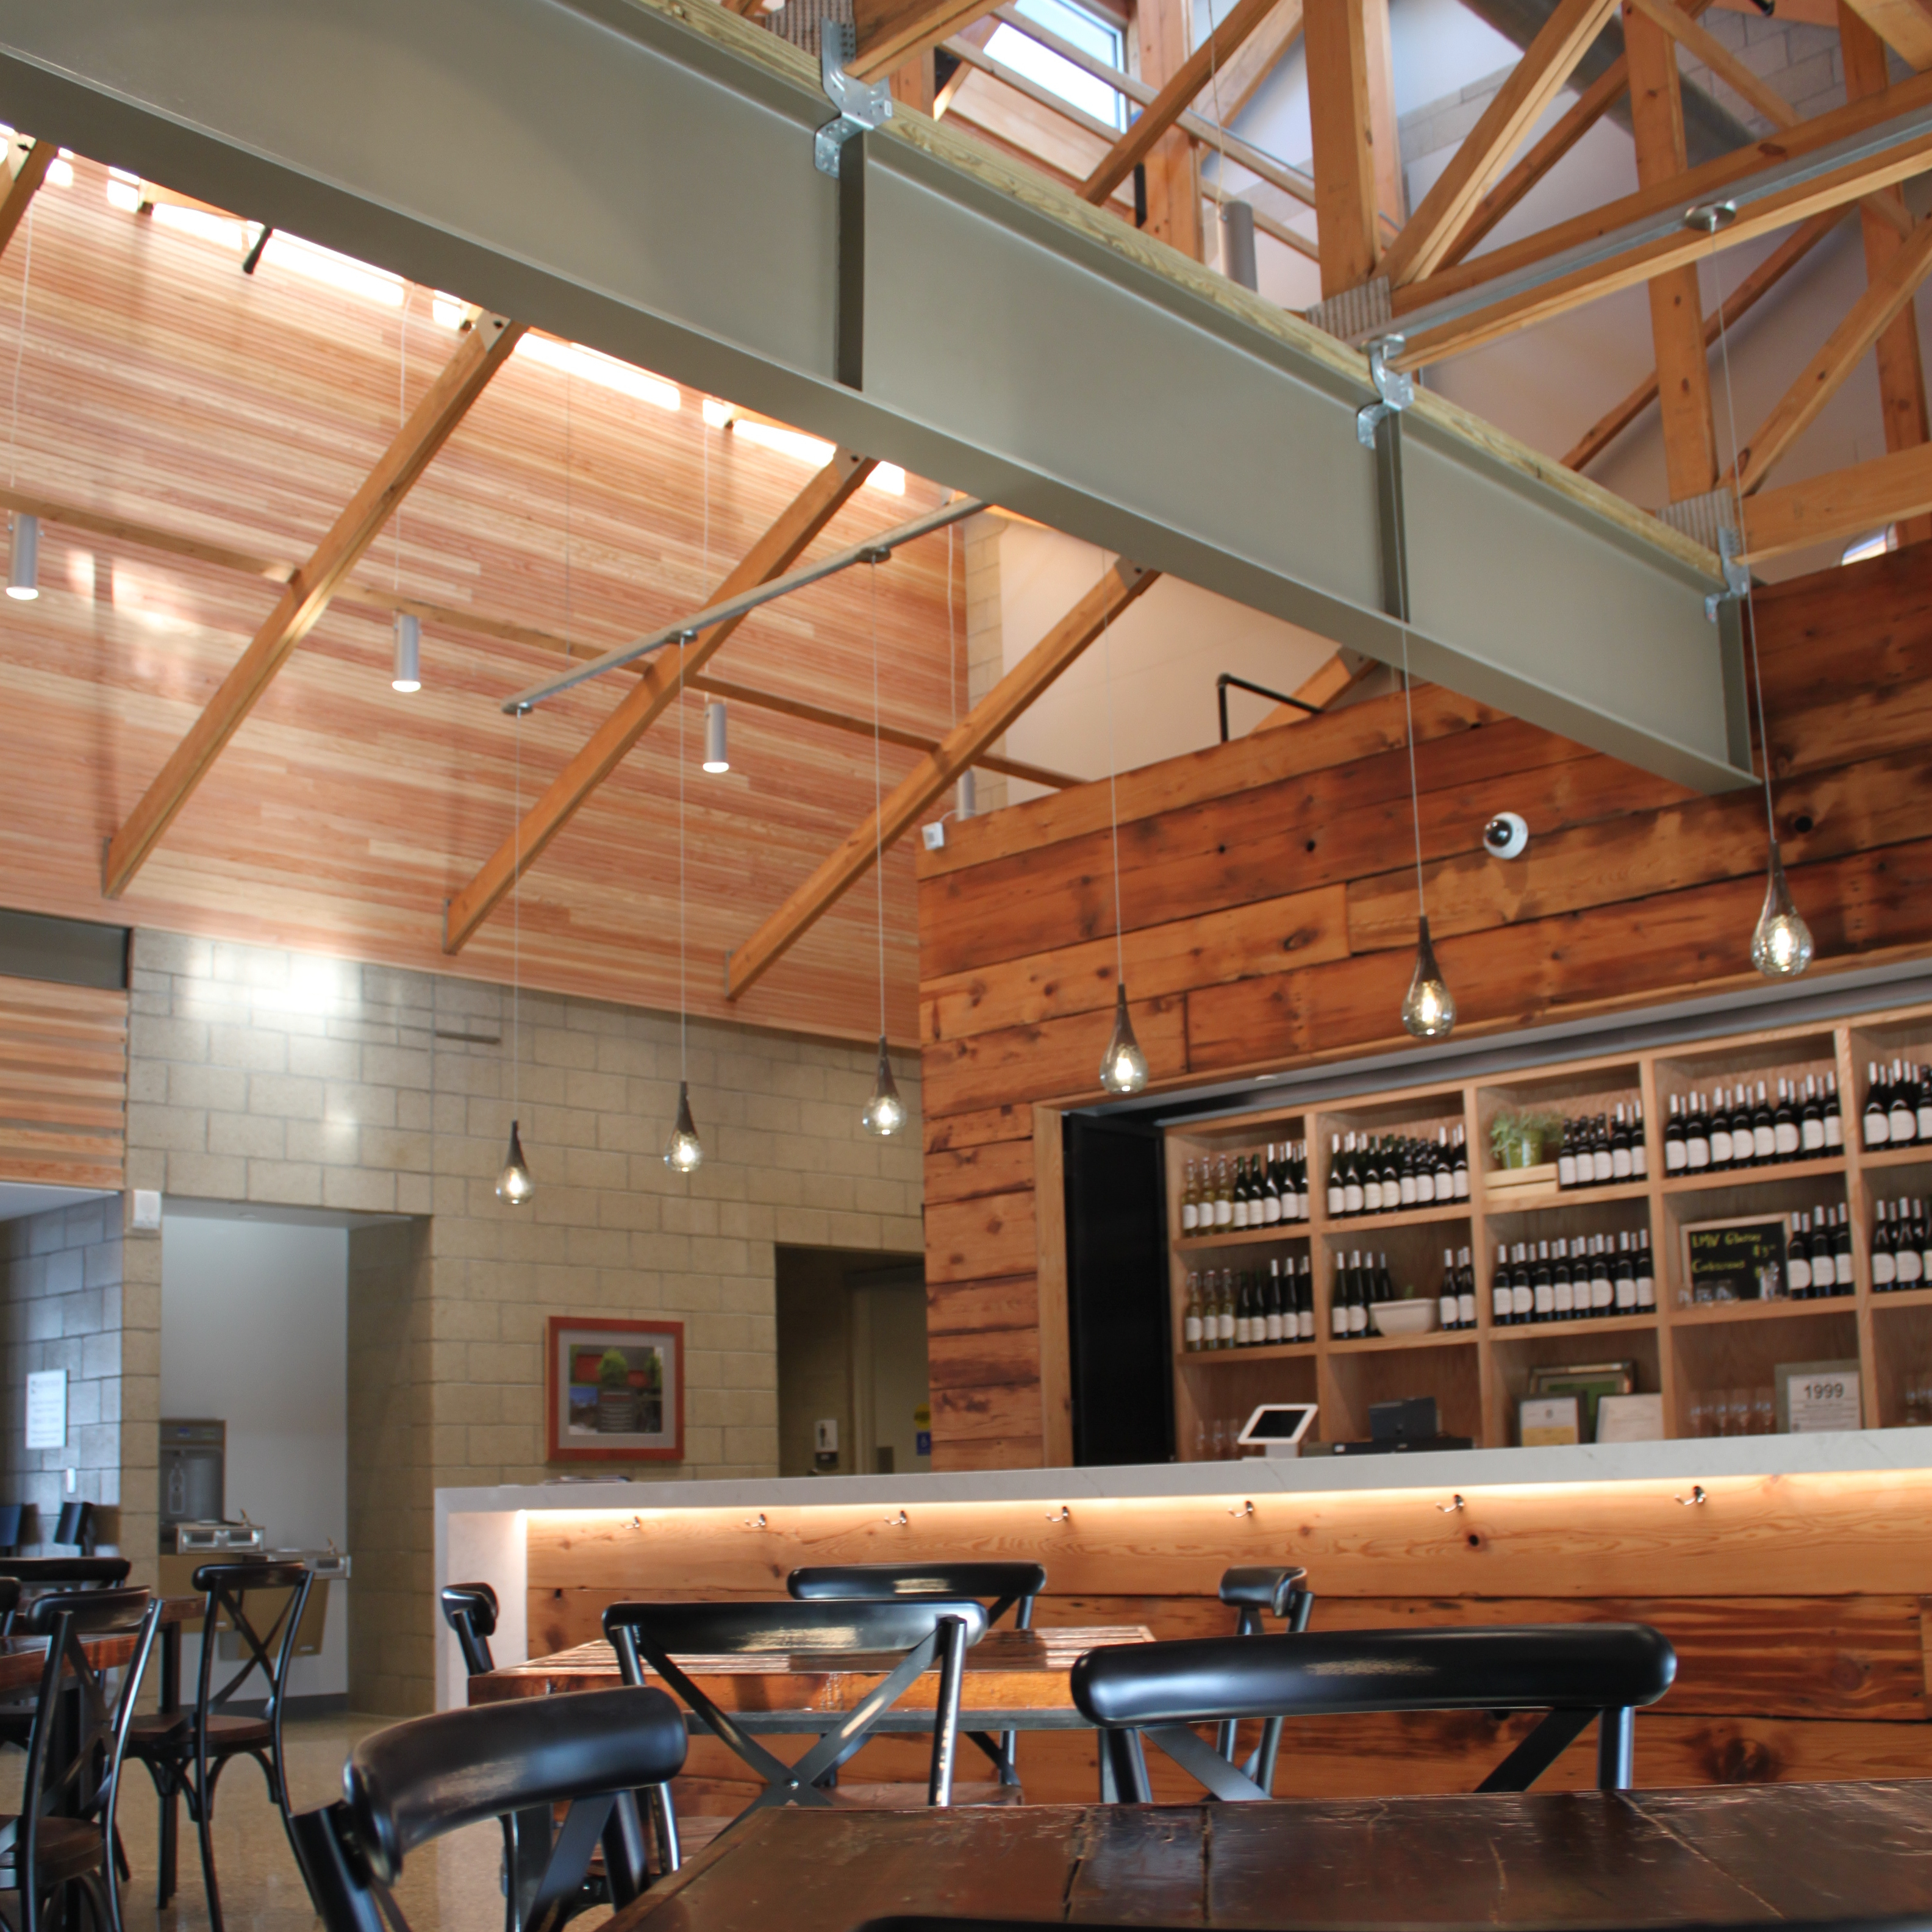 A photo showing the interior of the Lake Michigan Vintners tasting room. A cabinet full of wine bottles and a cinderblock from the back walls. Light pours in from the ceiling across wooden trusses and beams, illuminating wooden tables and a marble bar.